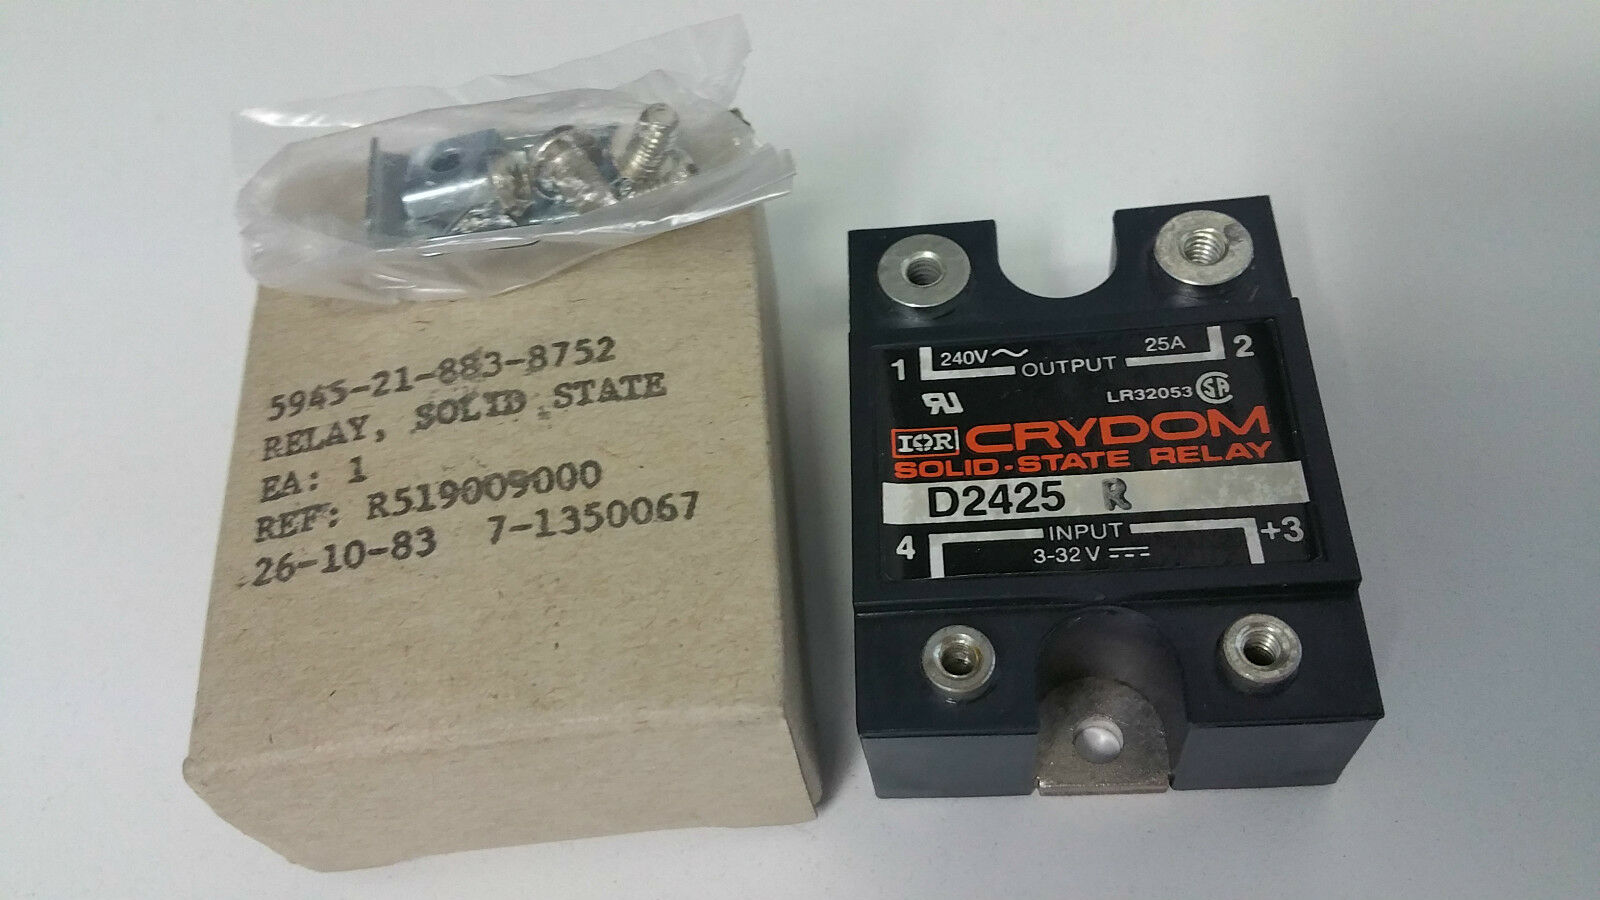 Crydom D2425 Solid State Relay, 24 to 280VAC 25A 1 of 10 .